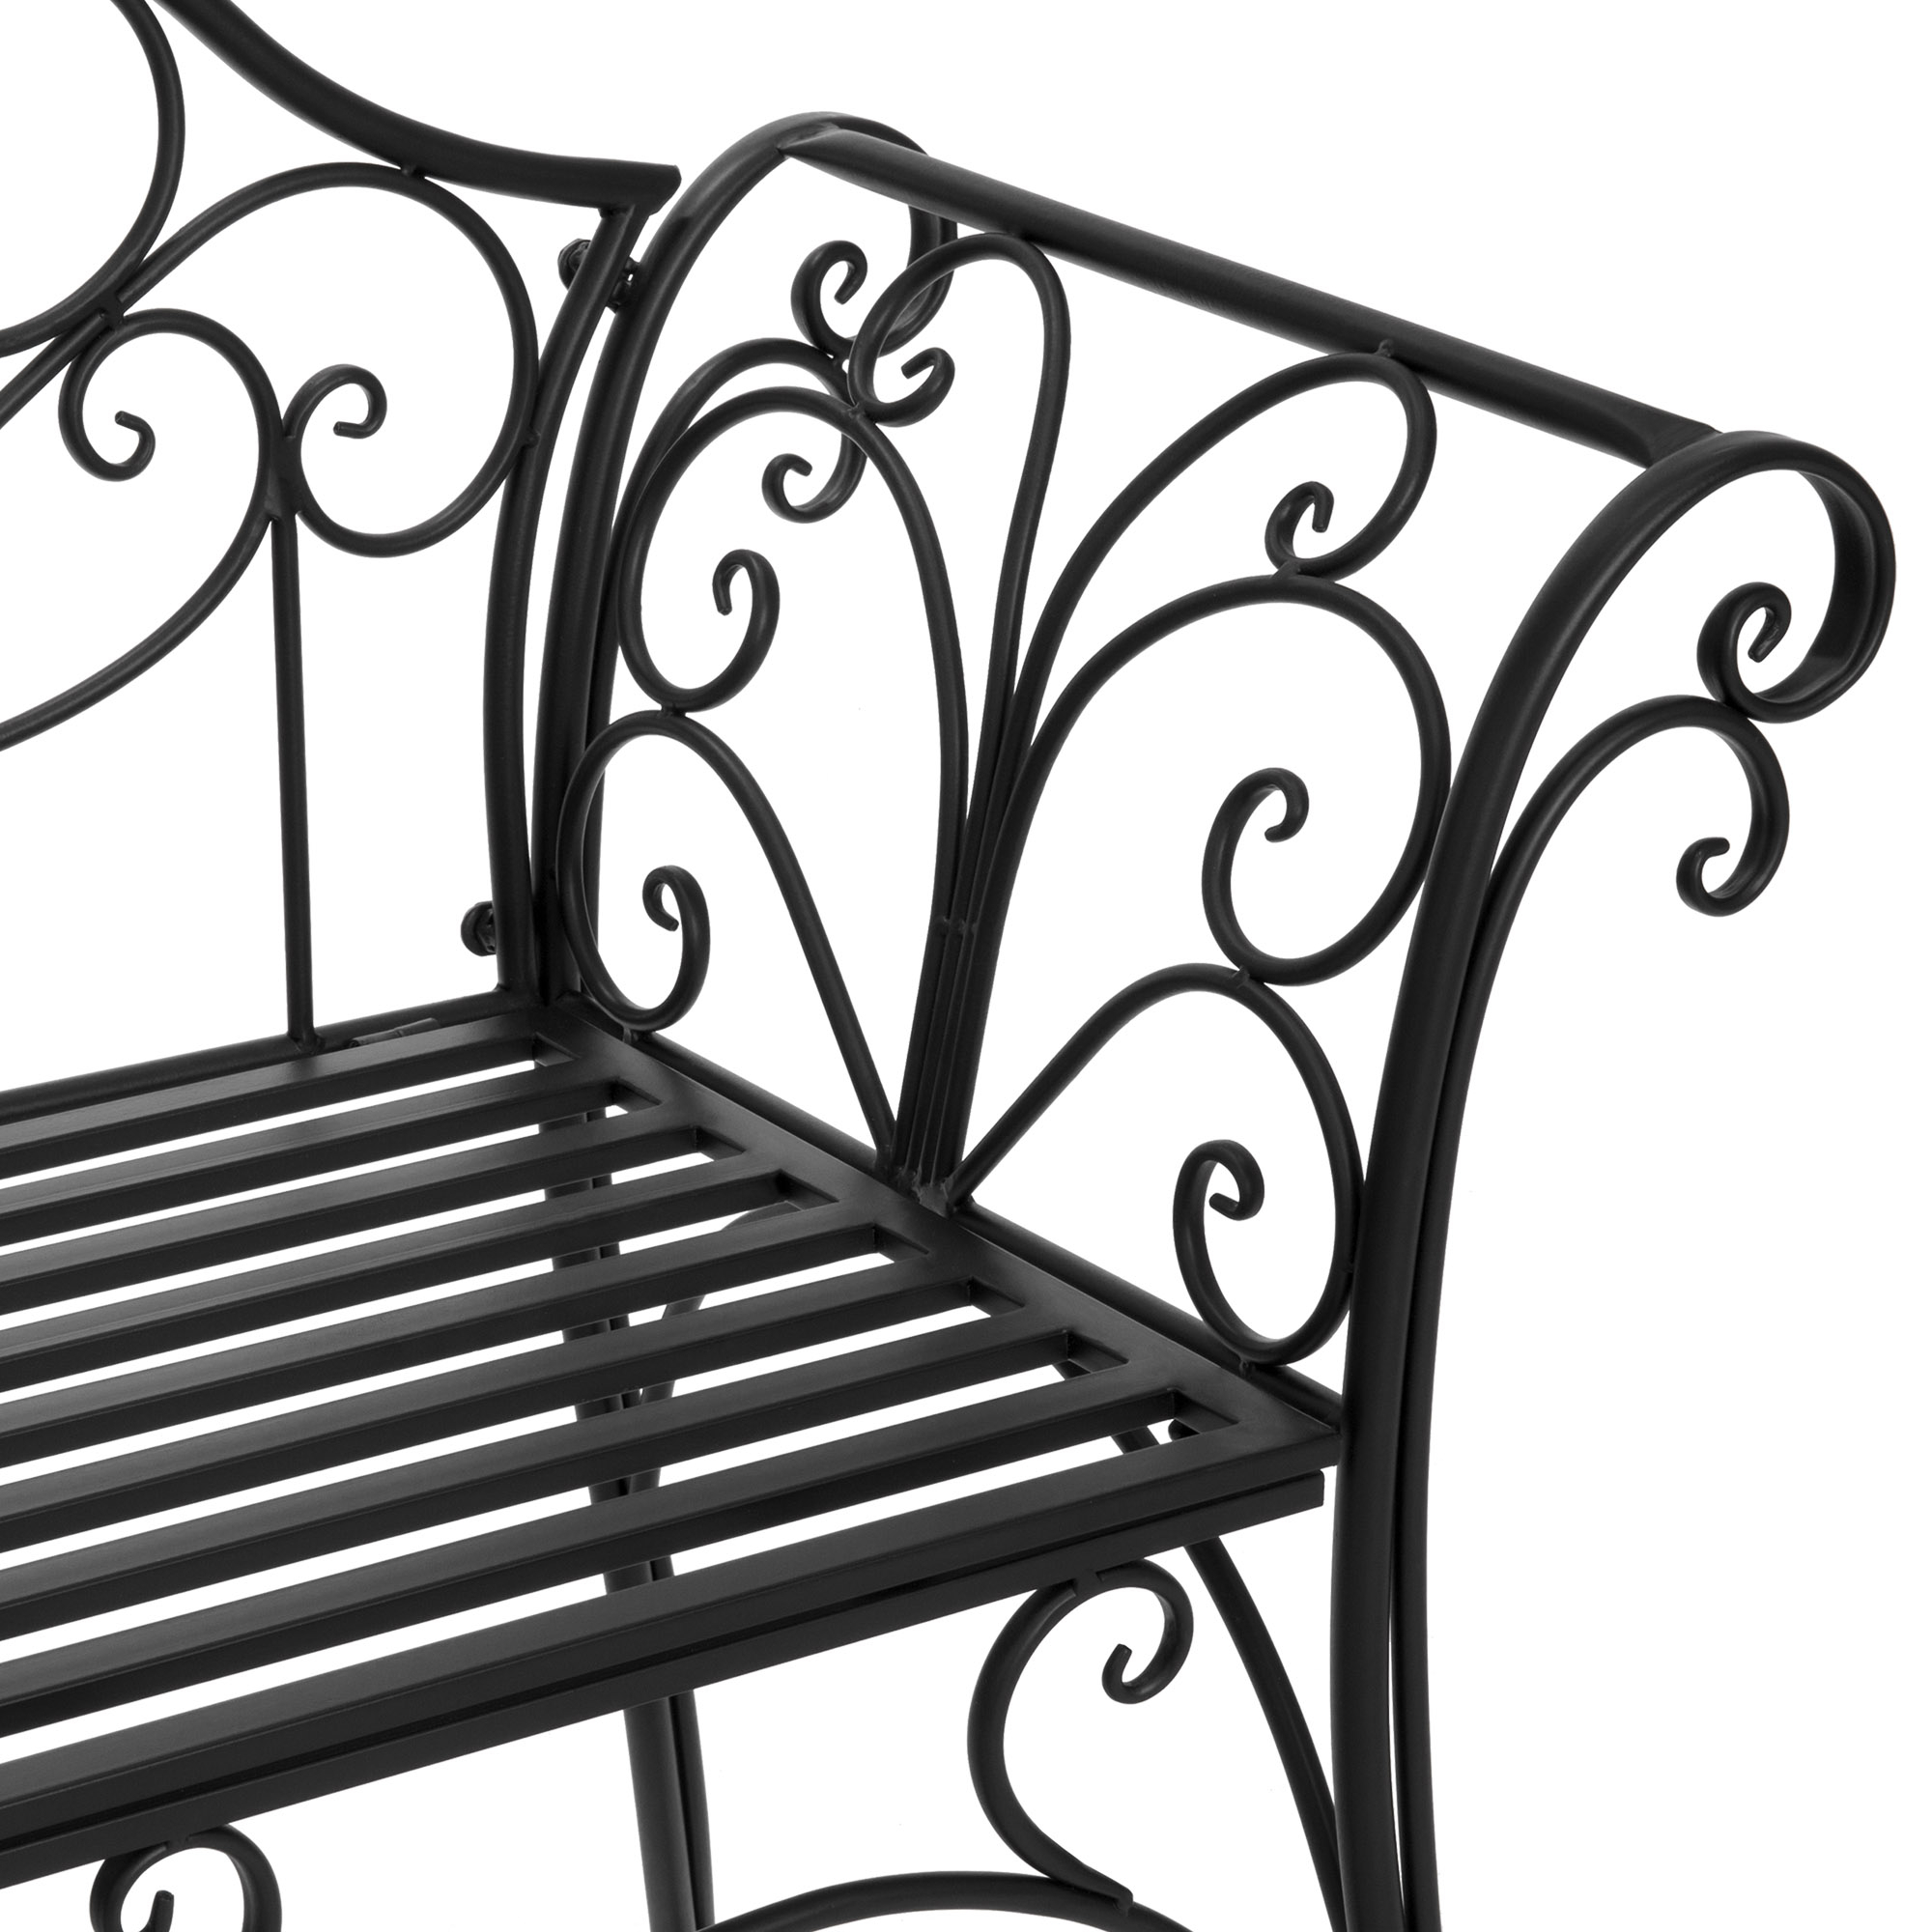 Swing Chair 2 Person Garden Bench 52 Inch Decorative Scroll Within 2 Person Black Steel Outdoor Swings (View 14 of 25)